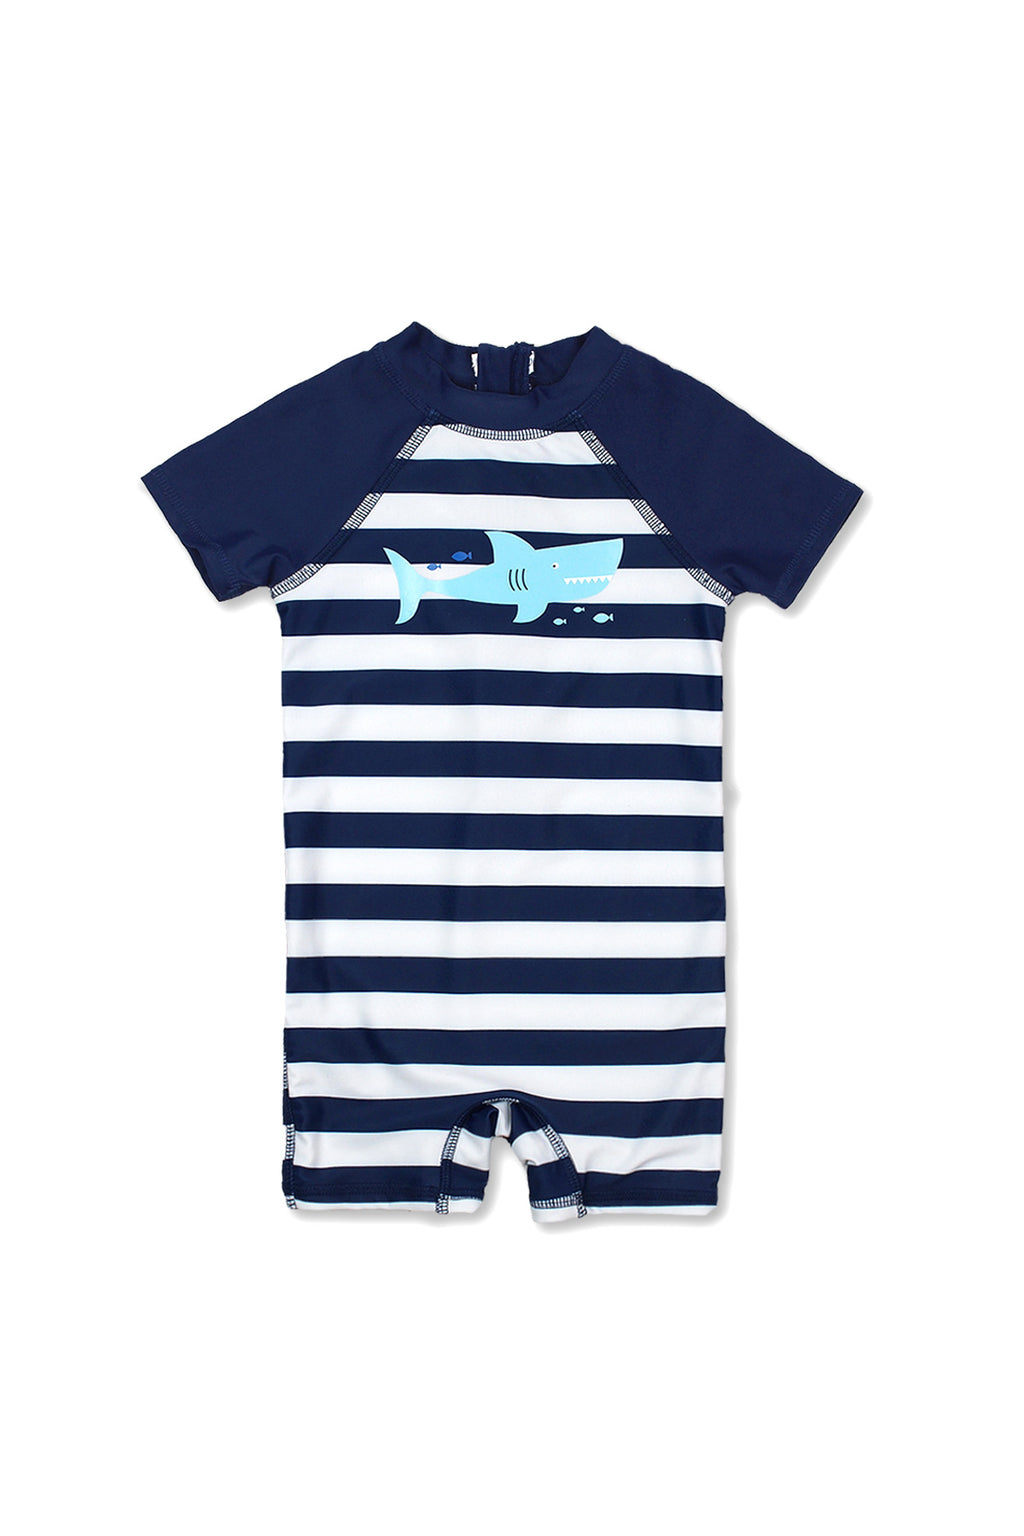 Boys Stripe Happy Shark Short Sleeve Half Zip One Piece Swim Sunsuit, Navy